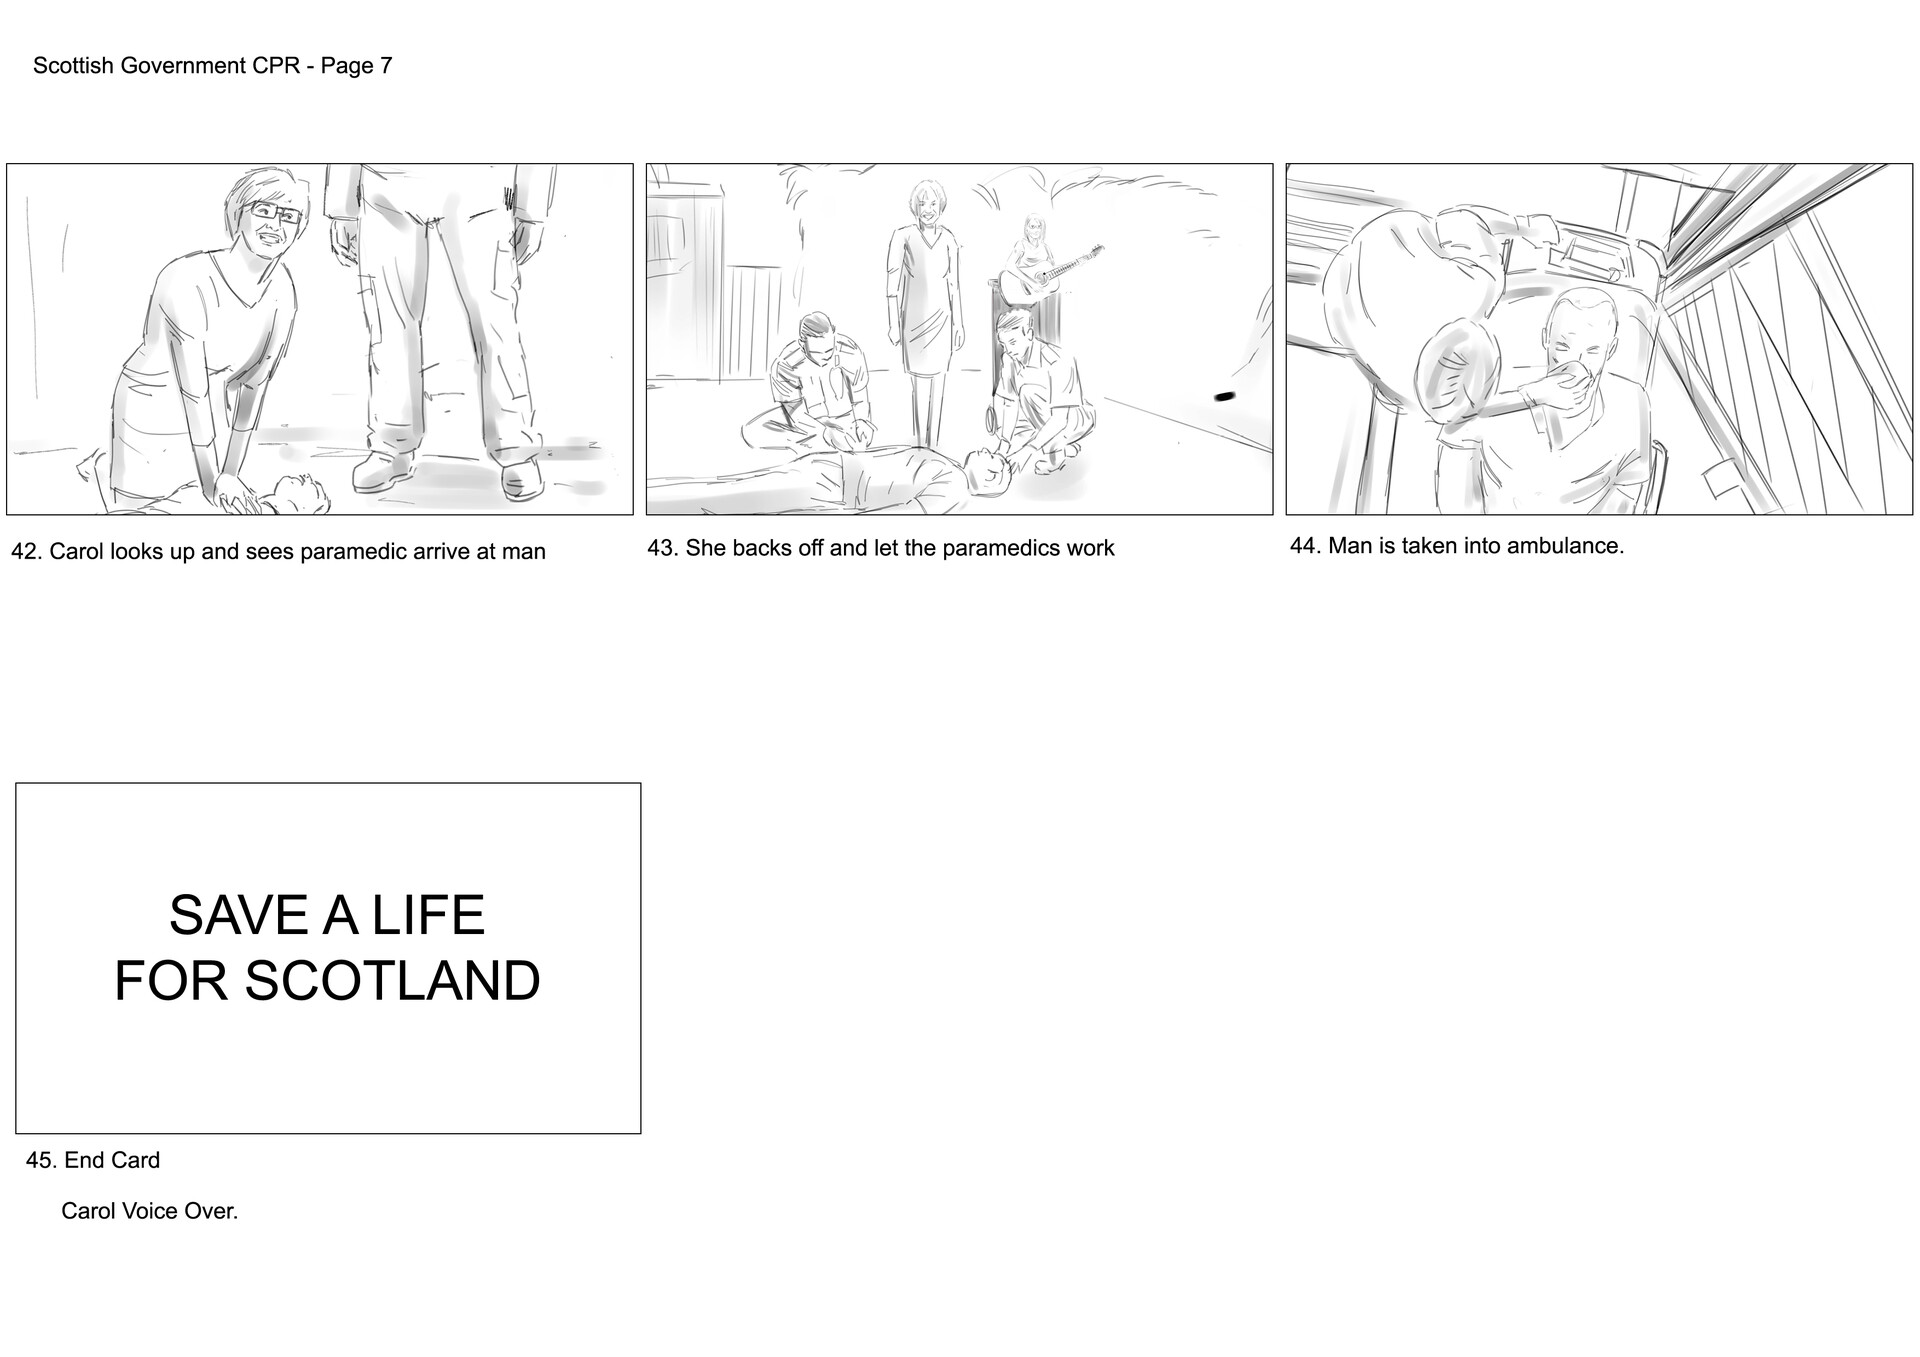 David newbigging save a life for scotland storyboards v2 8